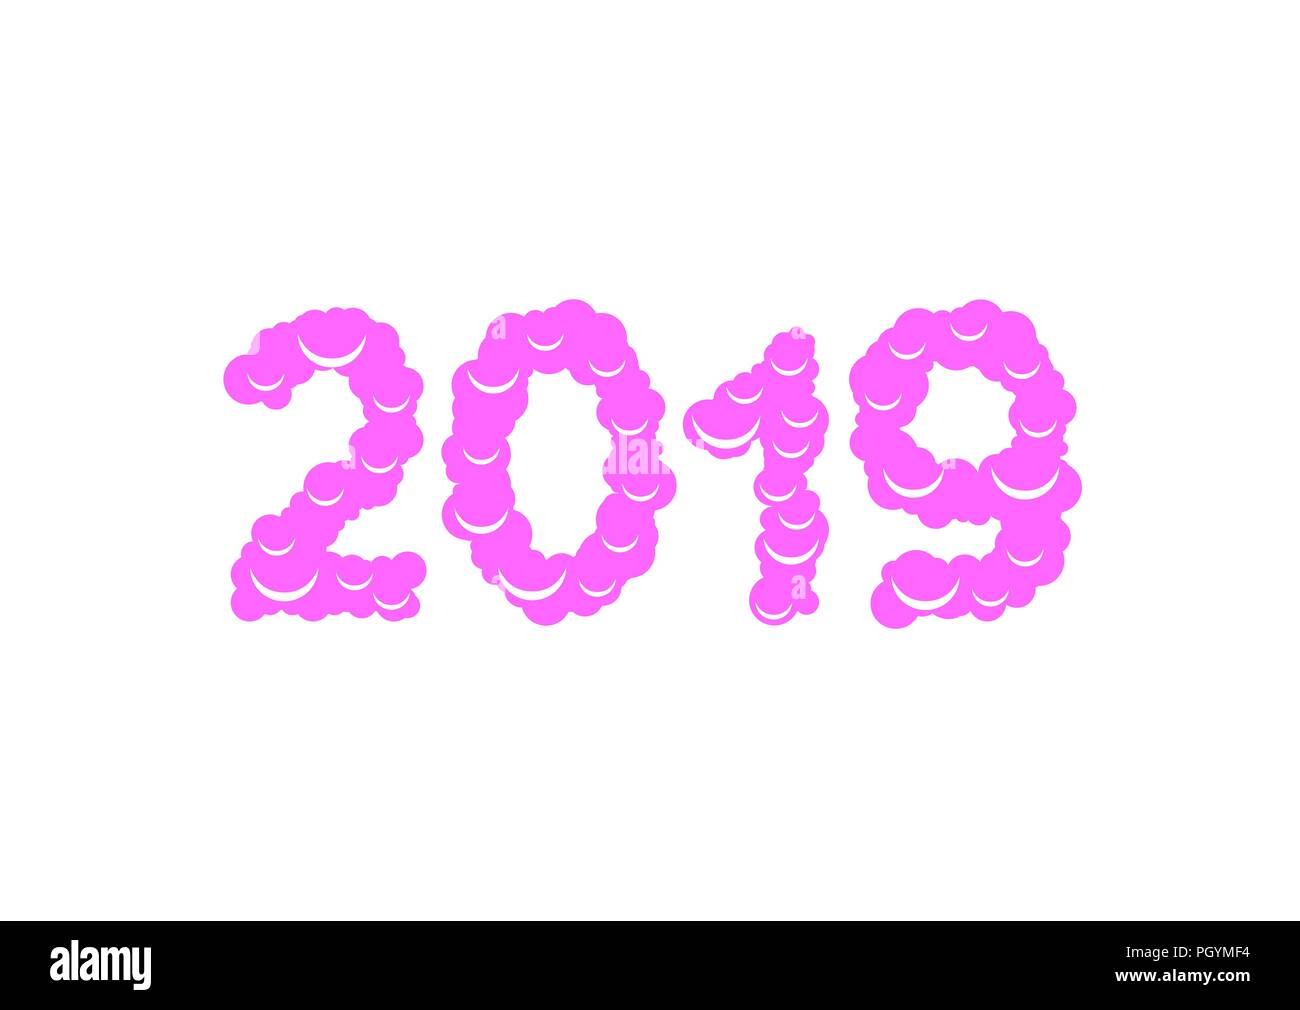 2019 sweet numbers happy new year and merry christmas